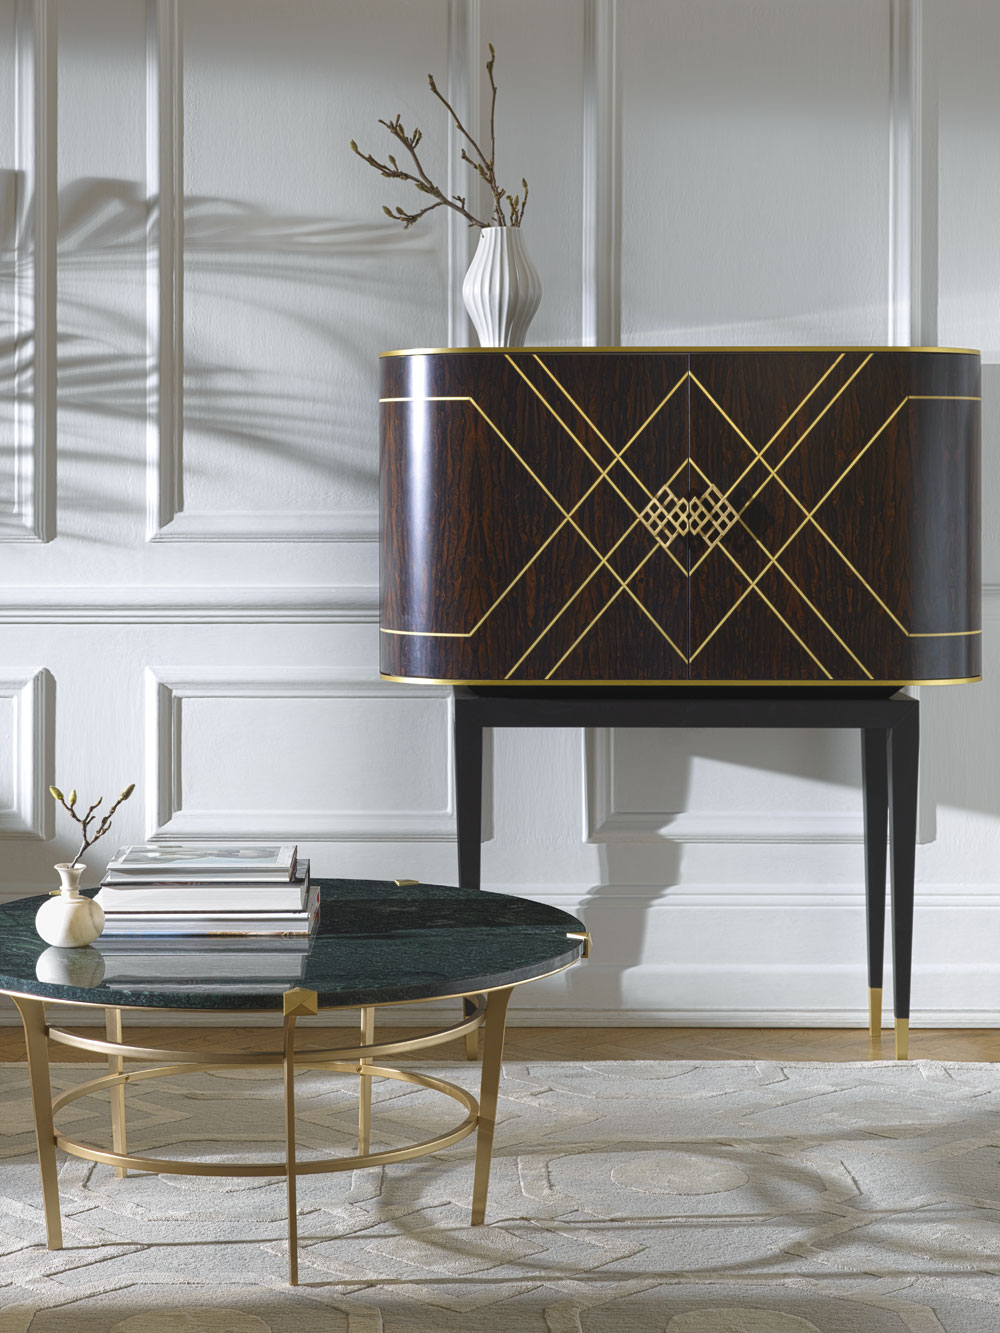 italian brand furniture it is now growing this with the inaugural furniture launch created in collaboration italian brand porada and british upholsterers artistic harrods launches an inhouse collection